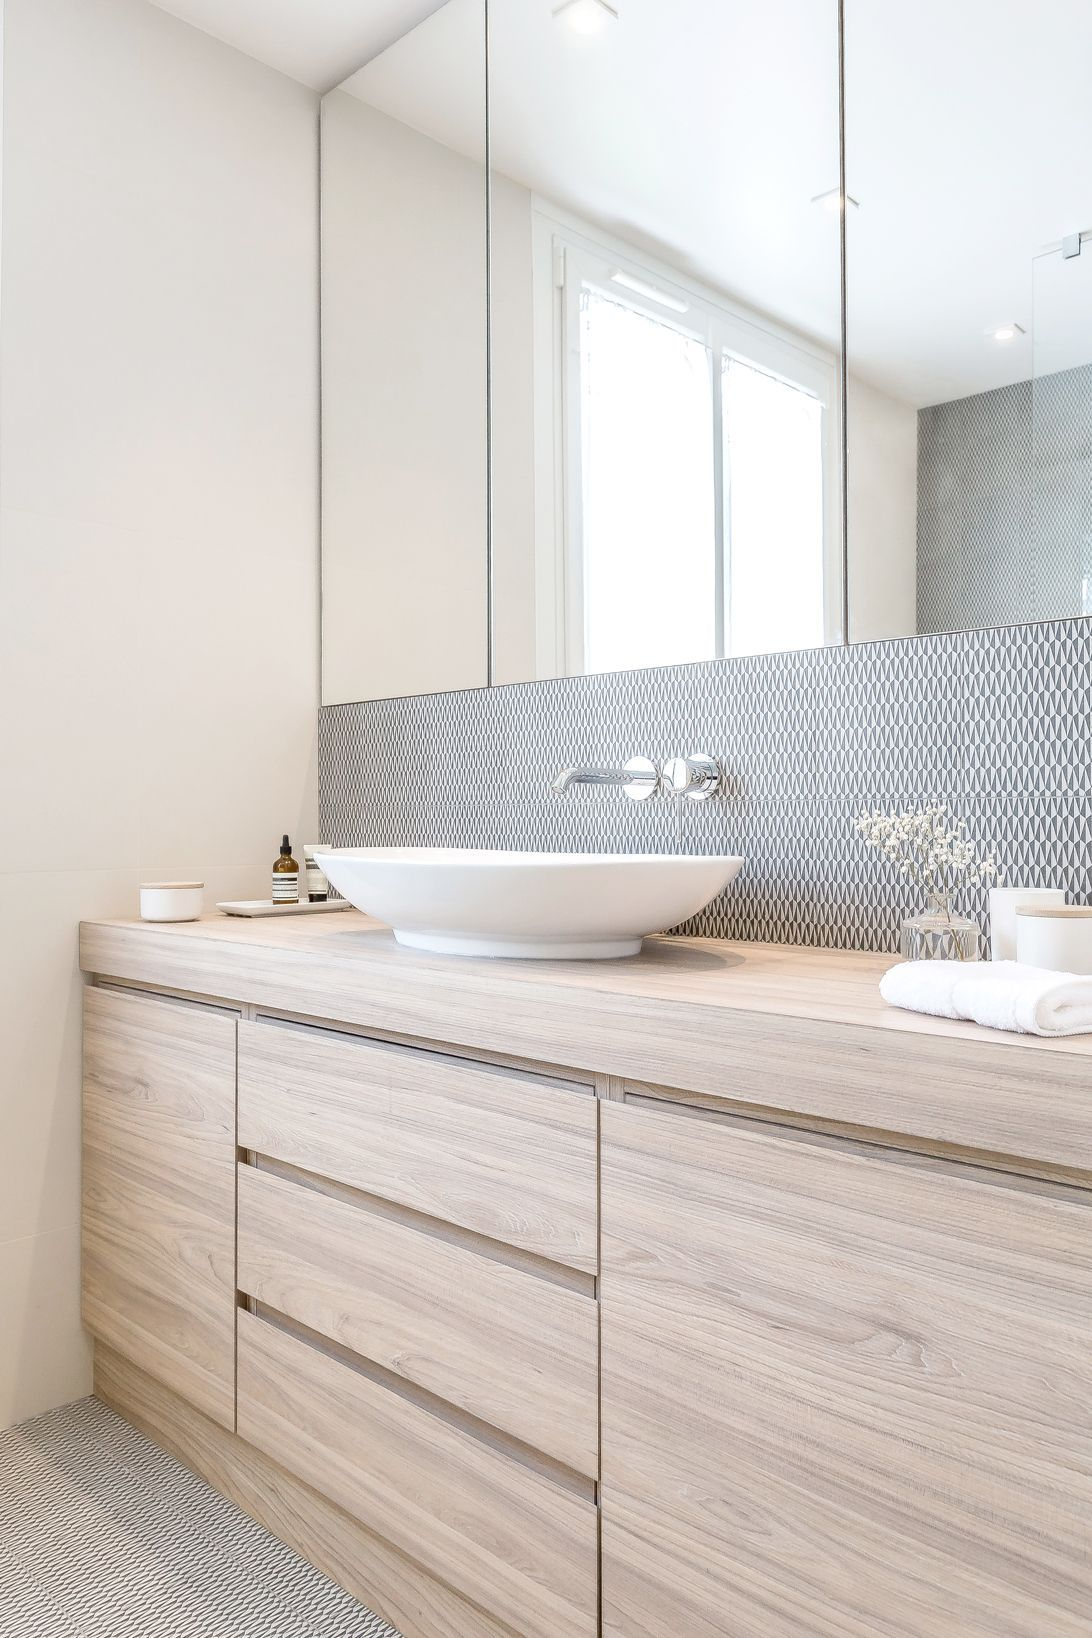 6 Tips To Make Your Bathroom Renovation Look Amazing | Pinterest ...